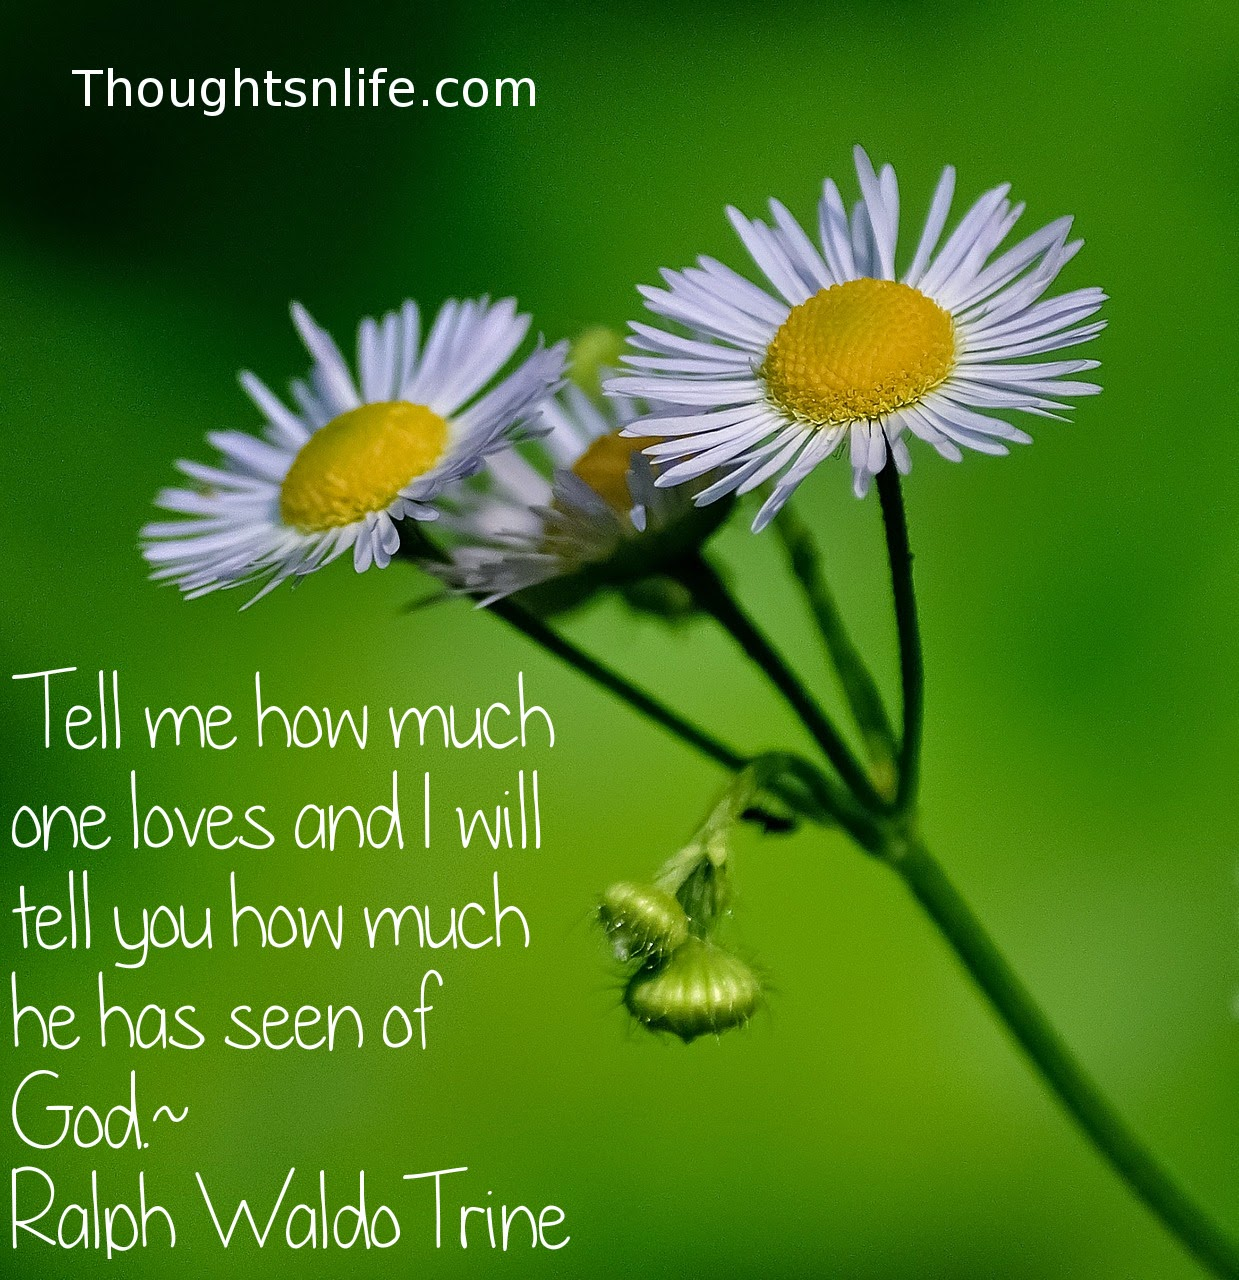 Thoughtsnlife.com: Tell me how much one loves and I will tell you how much he has seen of God. Ralph Waldo Trine